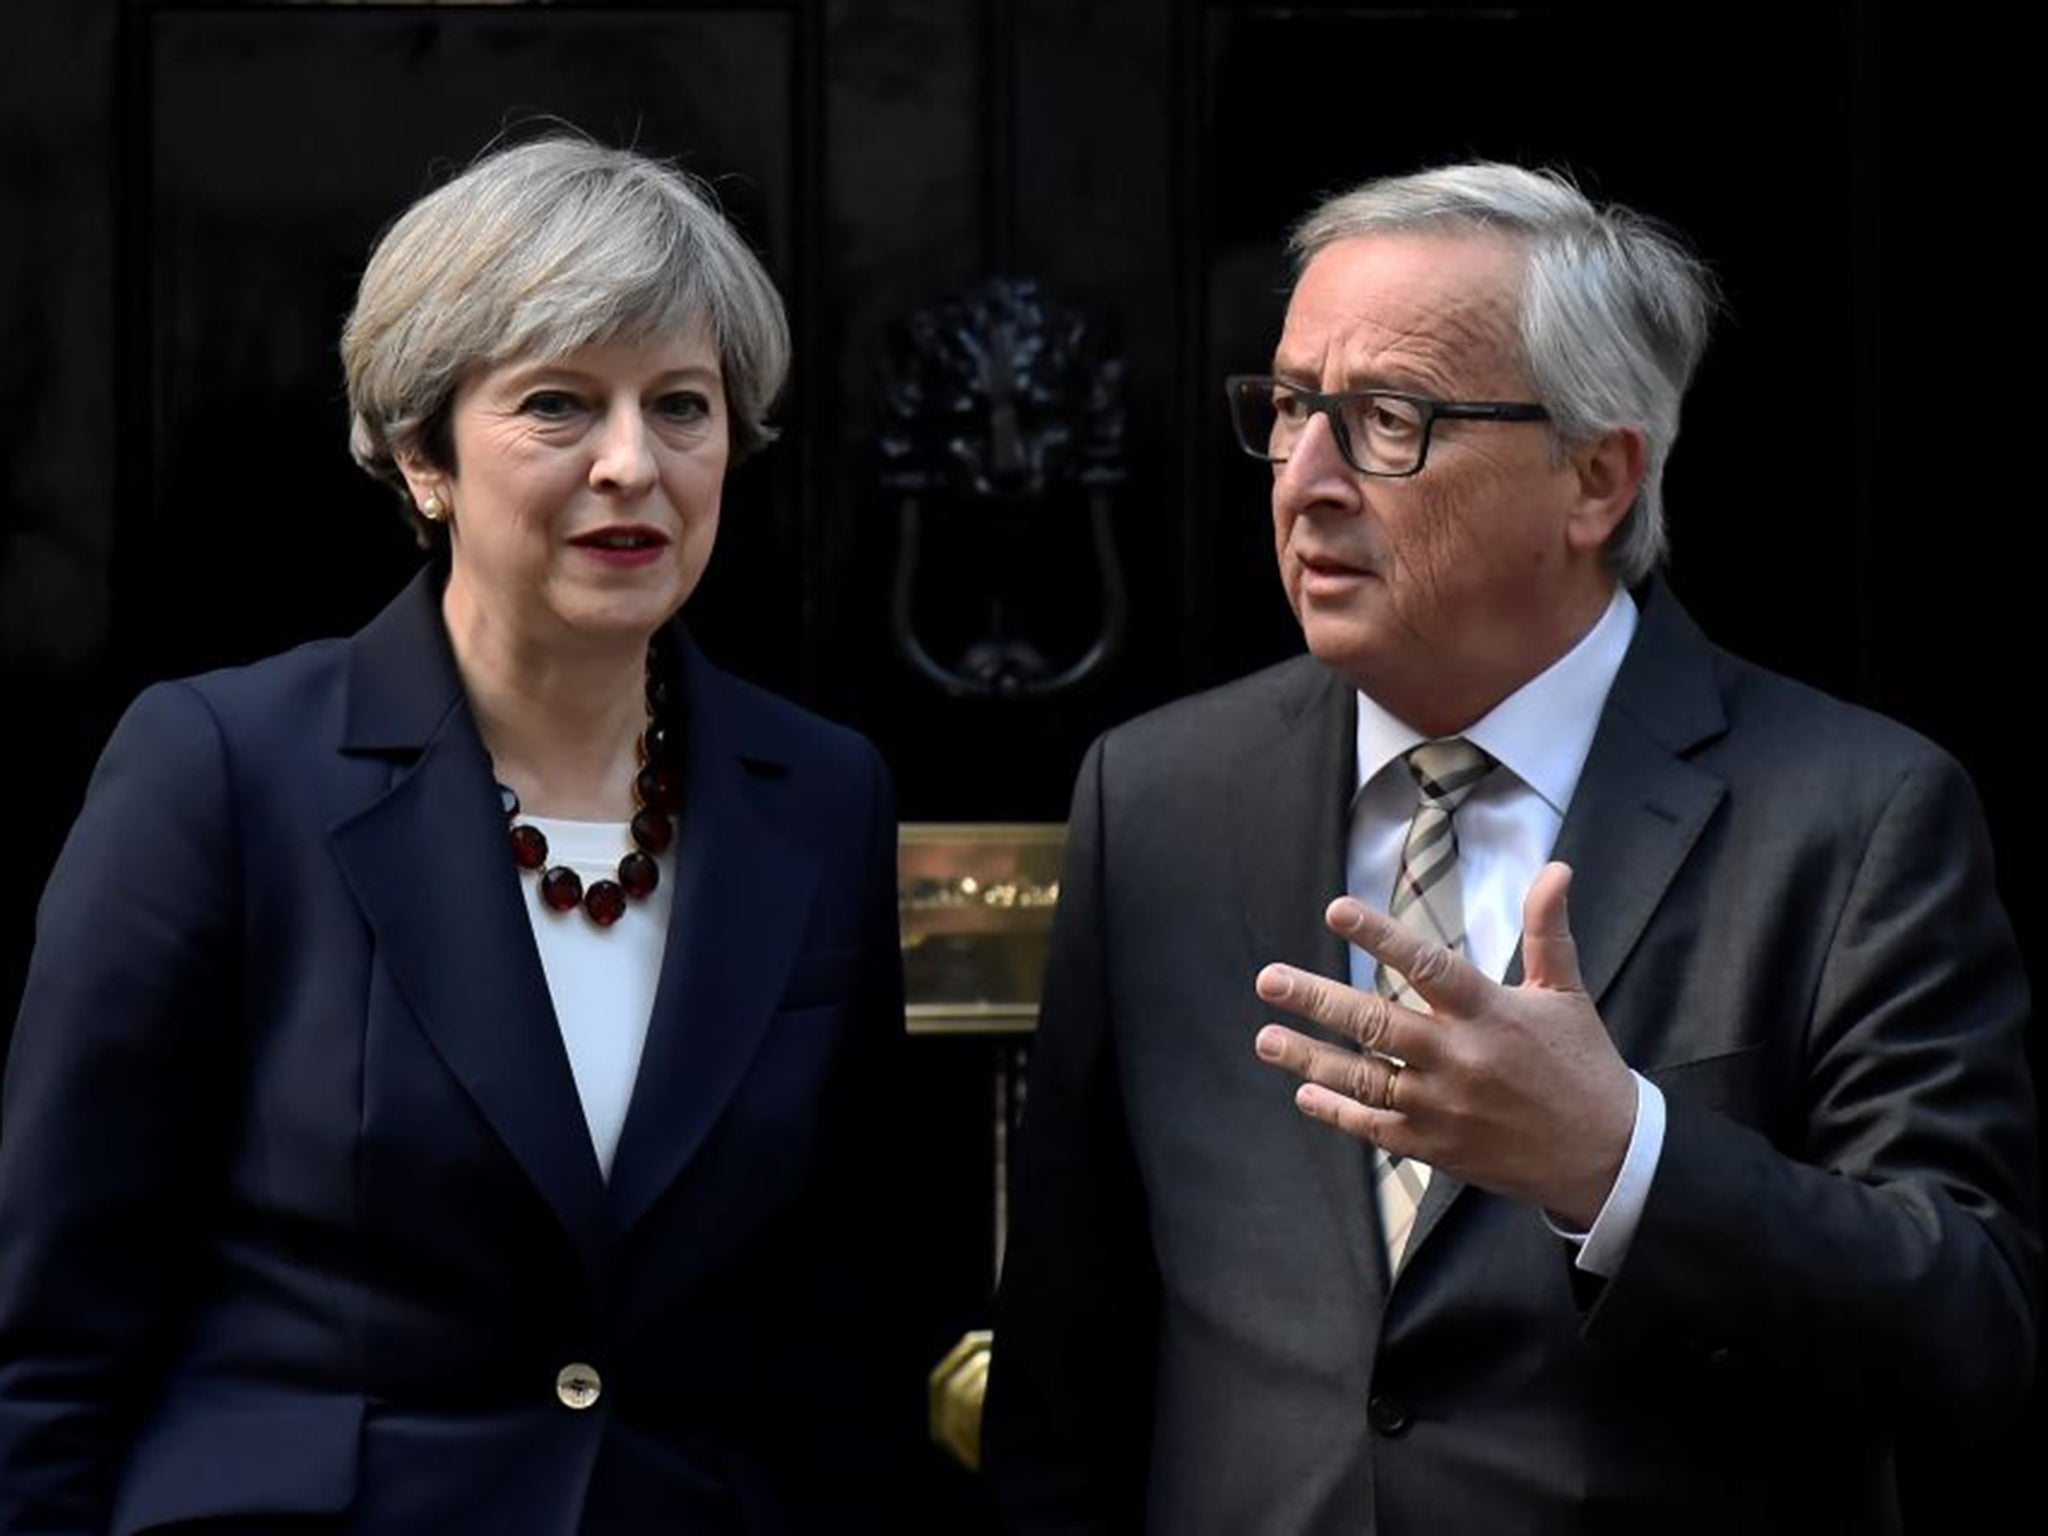 Brexit: Theresa May tells EU she wants 'deep and special relationship' after meeting with Juncker and Barnier